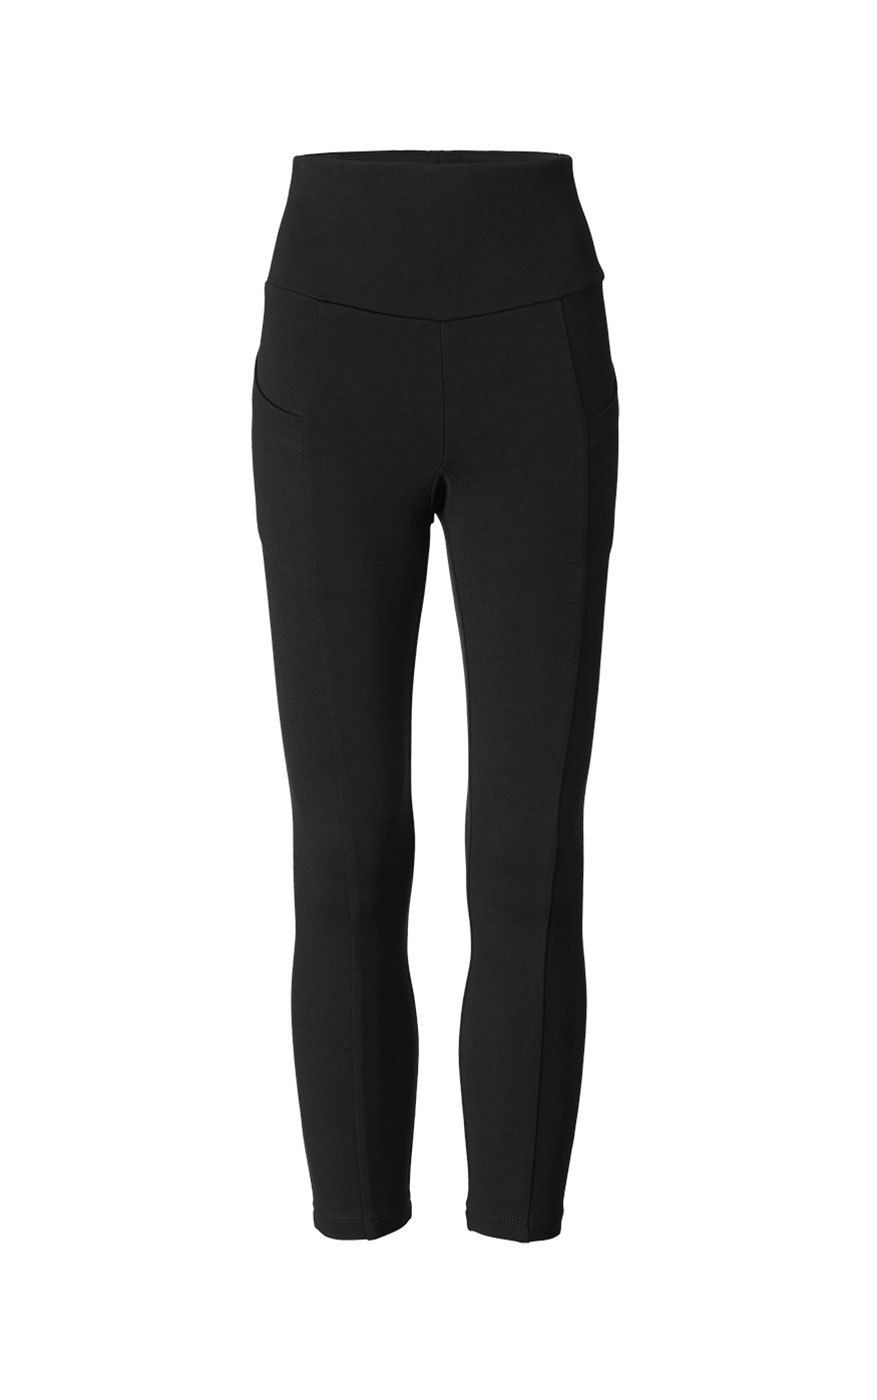 cabi's Relax Cropped Legging